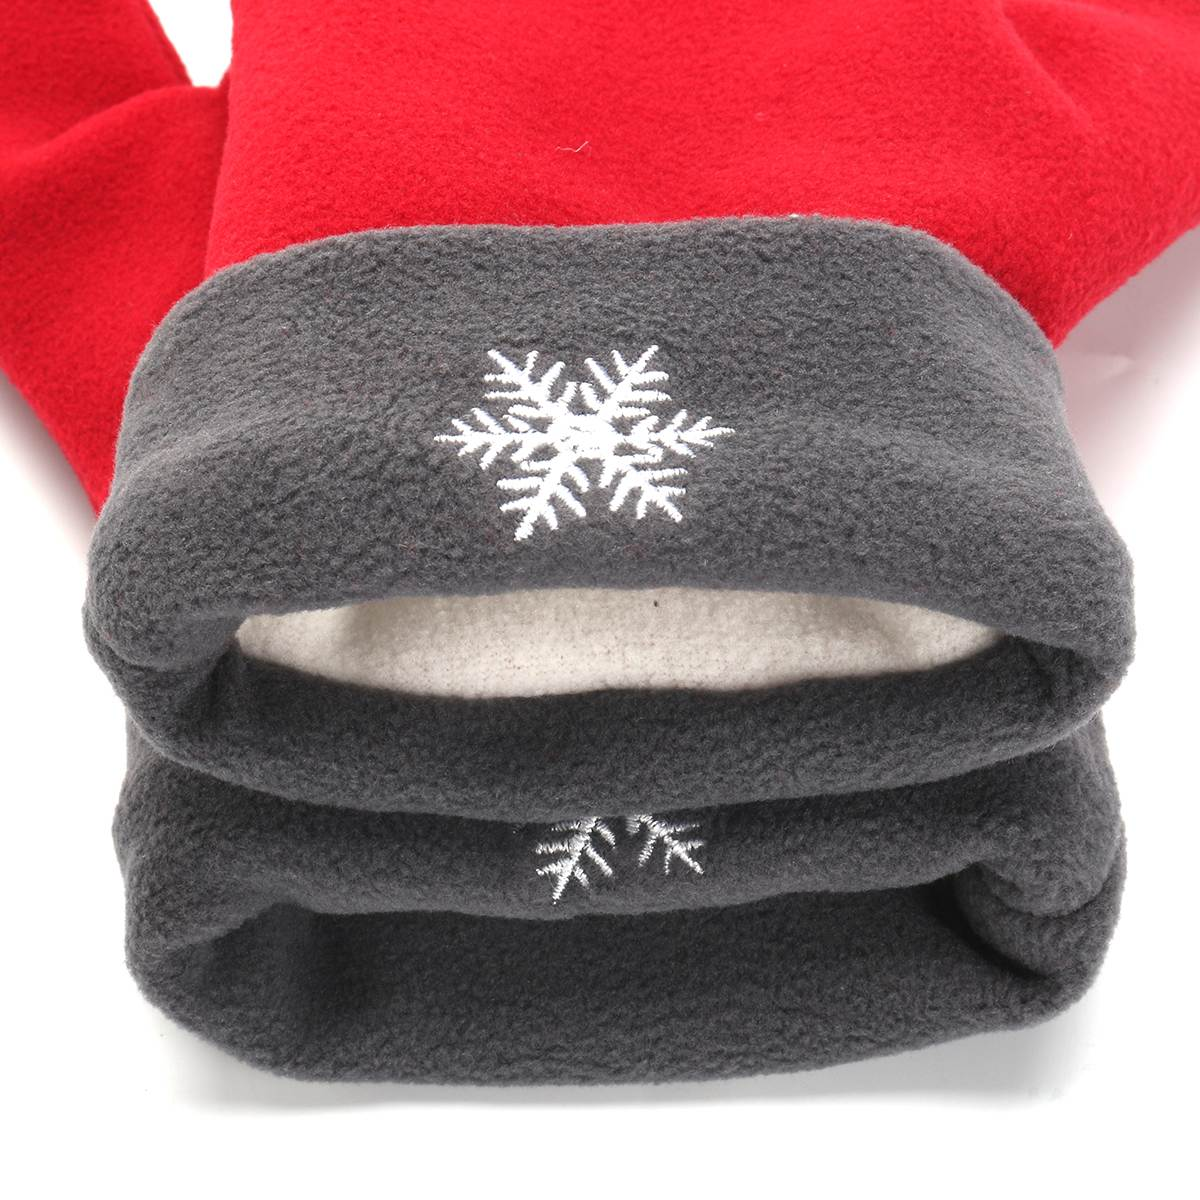 3PCS Unisex Winter Warm Couple Lover Gloves Christmas Xmas Sweethearts Mittens